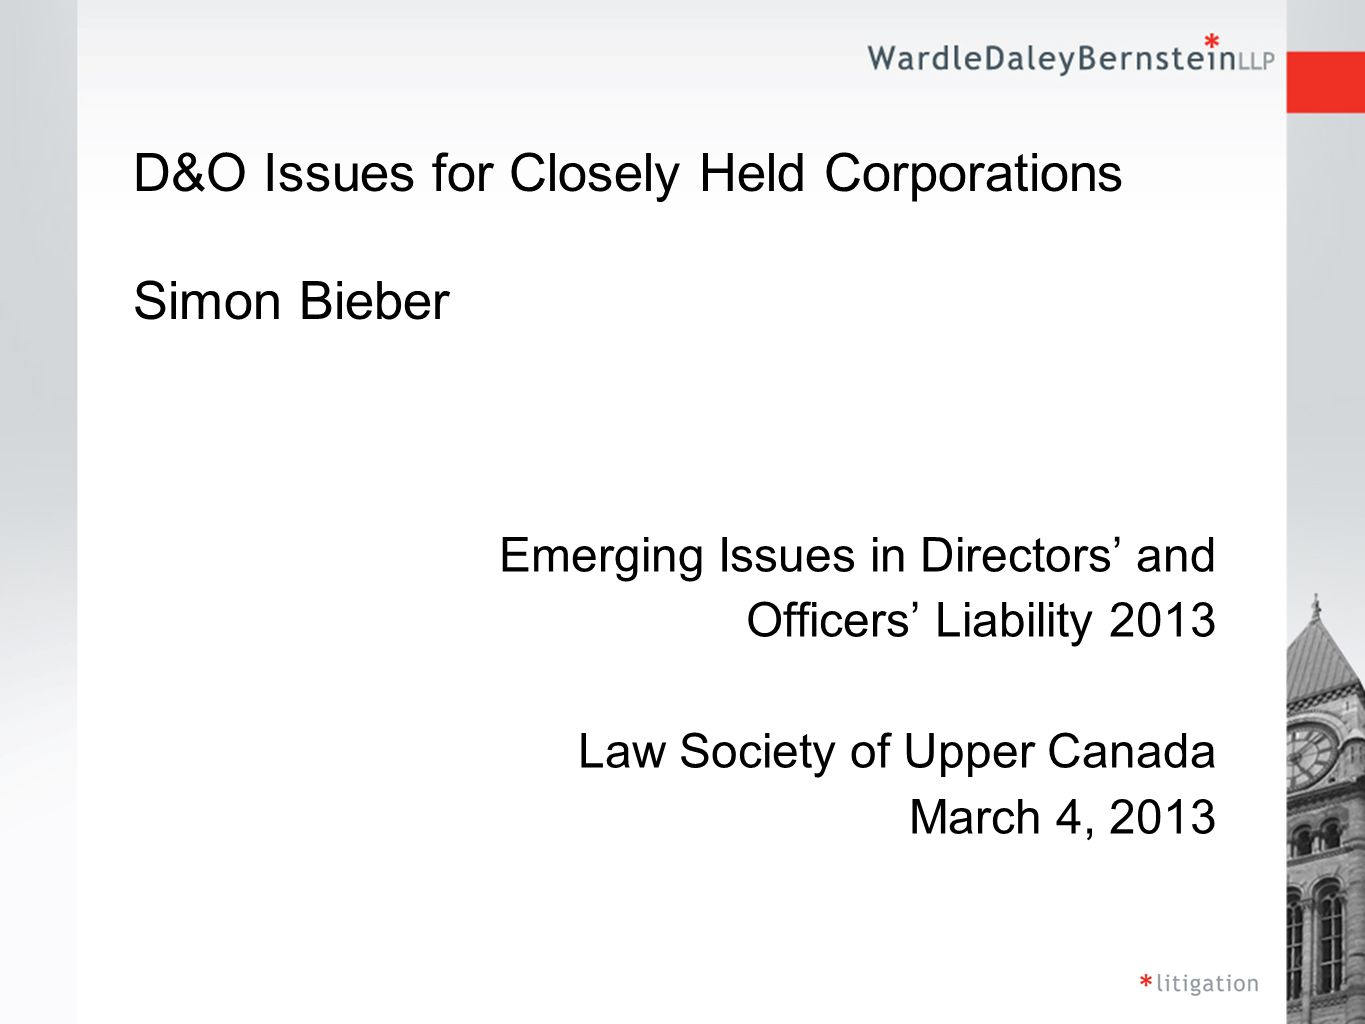 D&O Issues for Closely Held Corporations Simon Bieber Emerging Issues in Directors' and Officers' Liability 2013 Law Society of Upper Canada March 4, 2013